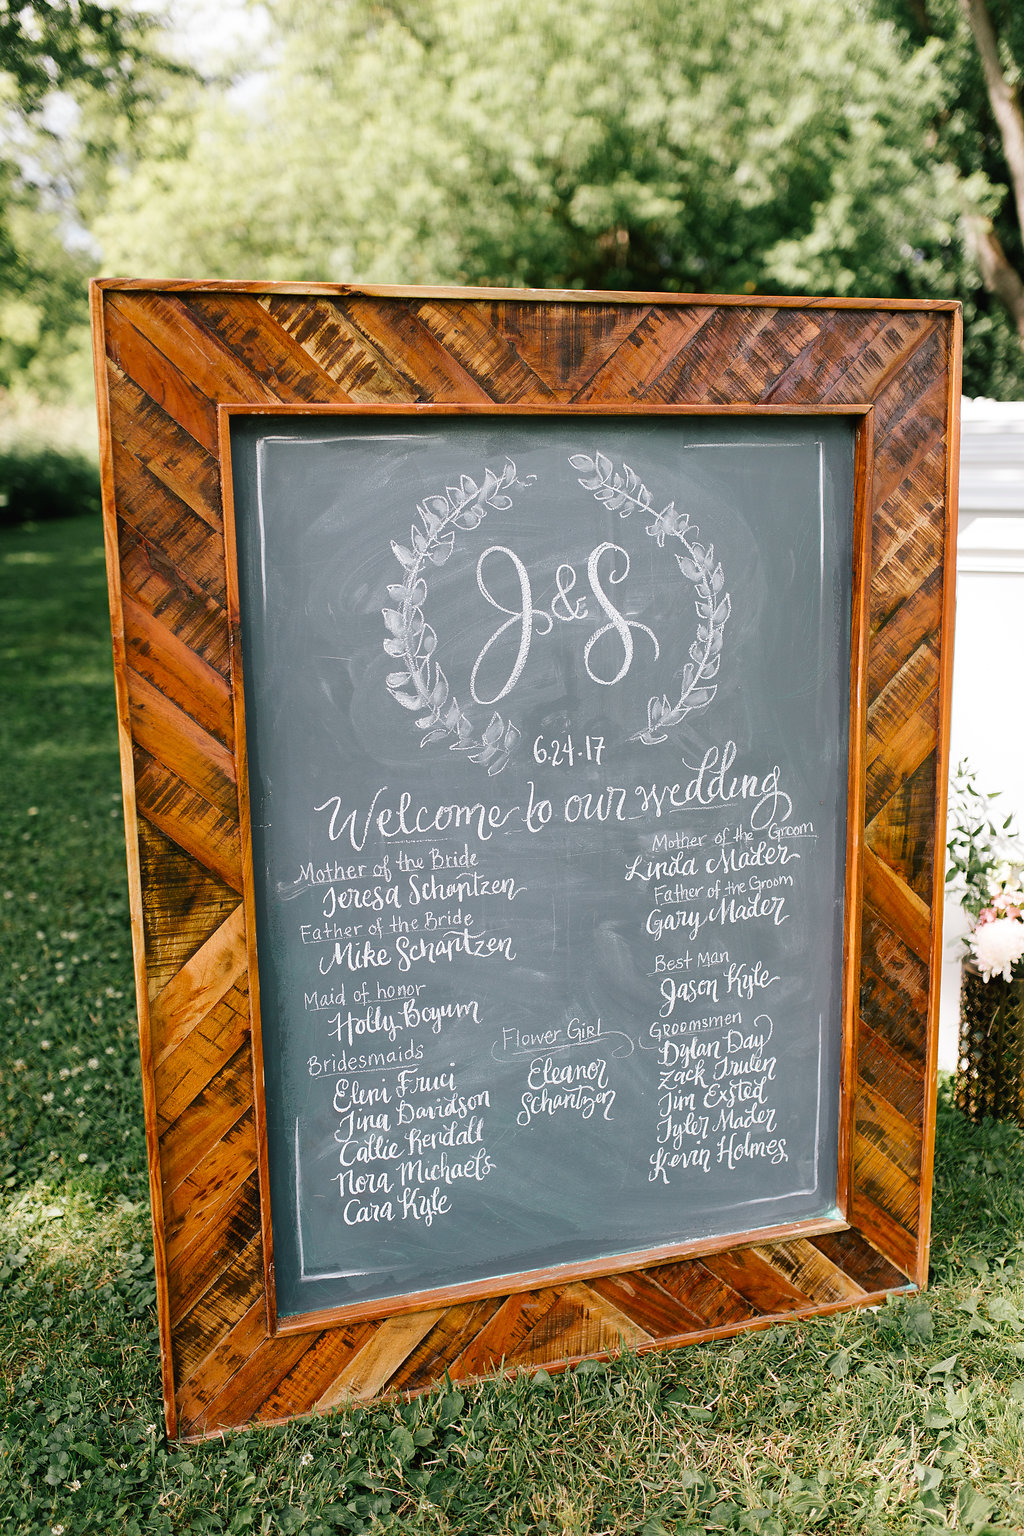 Jade and Seth Bloom Lake Barn wedding | Allison Hopperstad Photography | A Vintage Touch Weddings planning nad design | Day of Coordinating by Sixpence Events 39.JPG